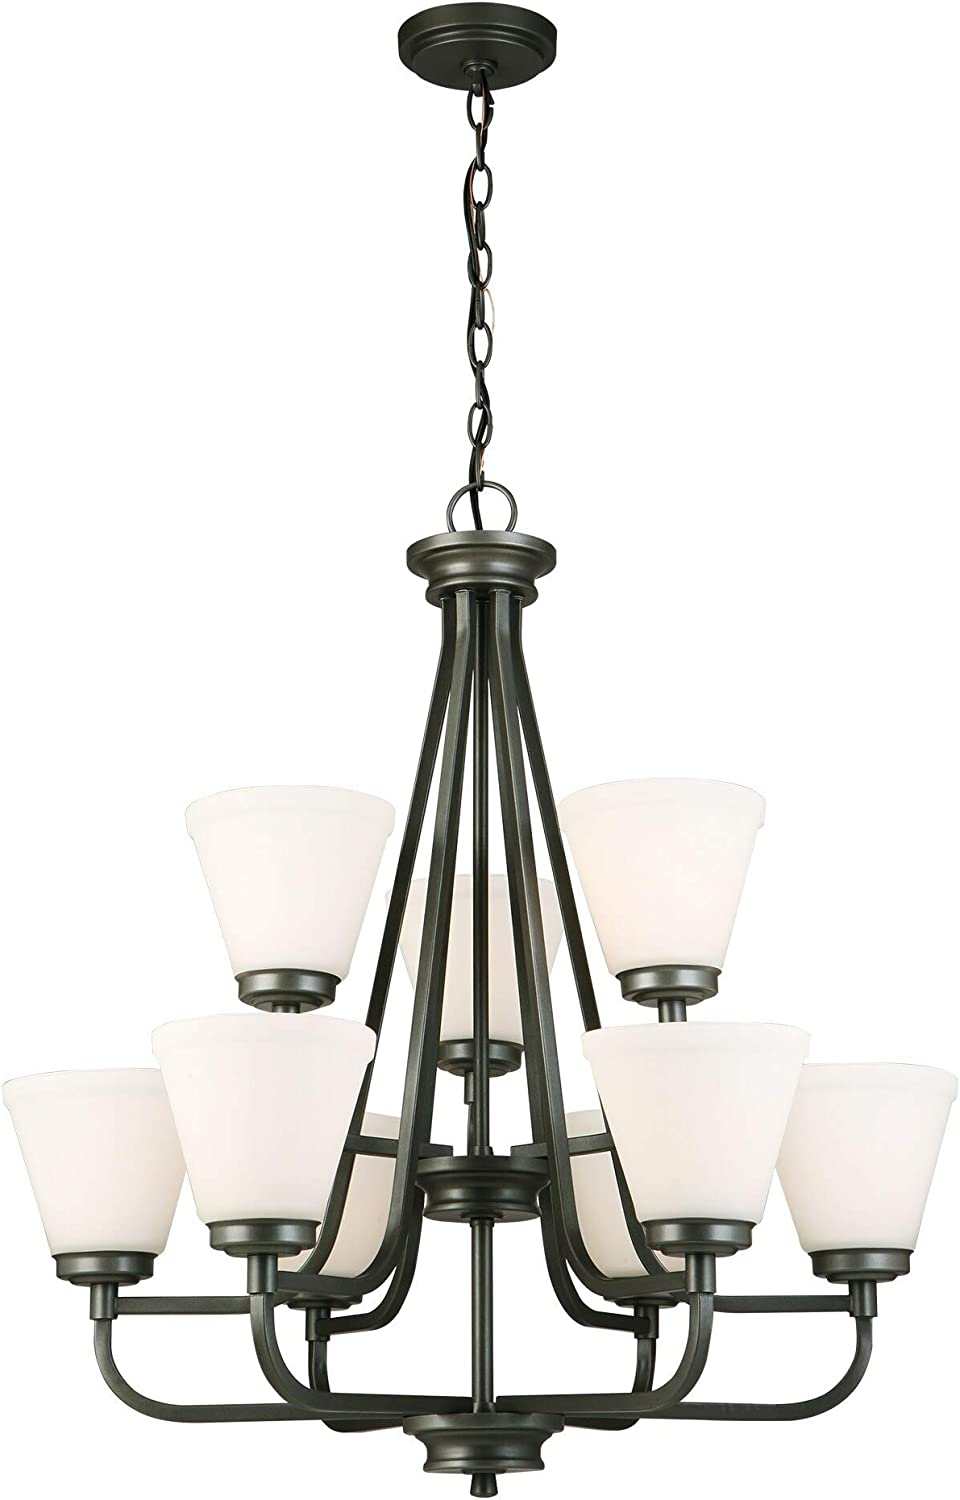 Gorgeous EGLO Complete Free Shipping 202902A Mayview Graphite 30-Inch Chandeliers